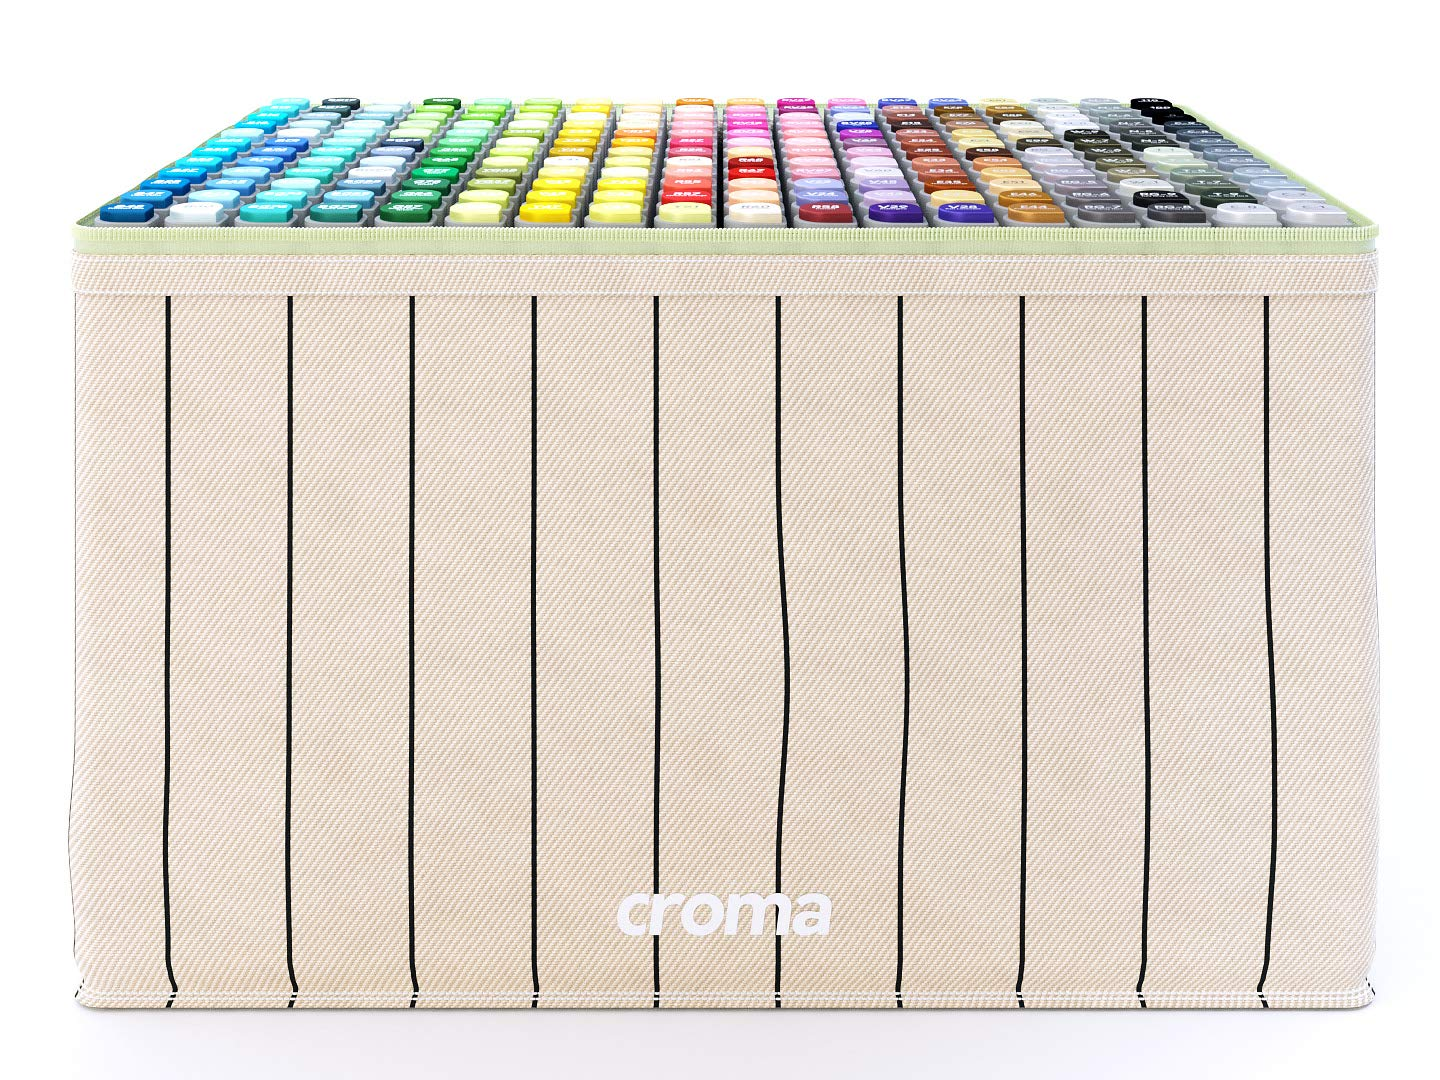 Croma Lite Brush Dual Tip Alcohol Based Sketch Markers, 216 Full Set, for Coloring Manga, Comic, Illustrations, Art, Industrial Design, Professional Artists, with Cotton Canvas Bag by Croma